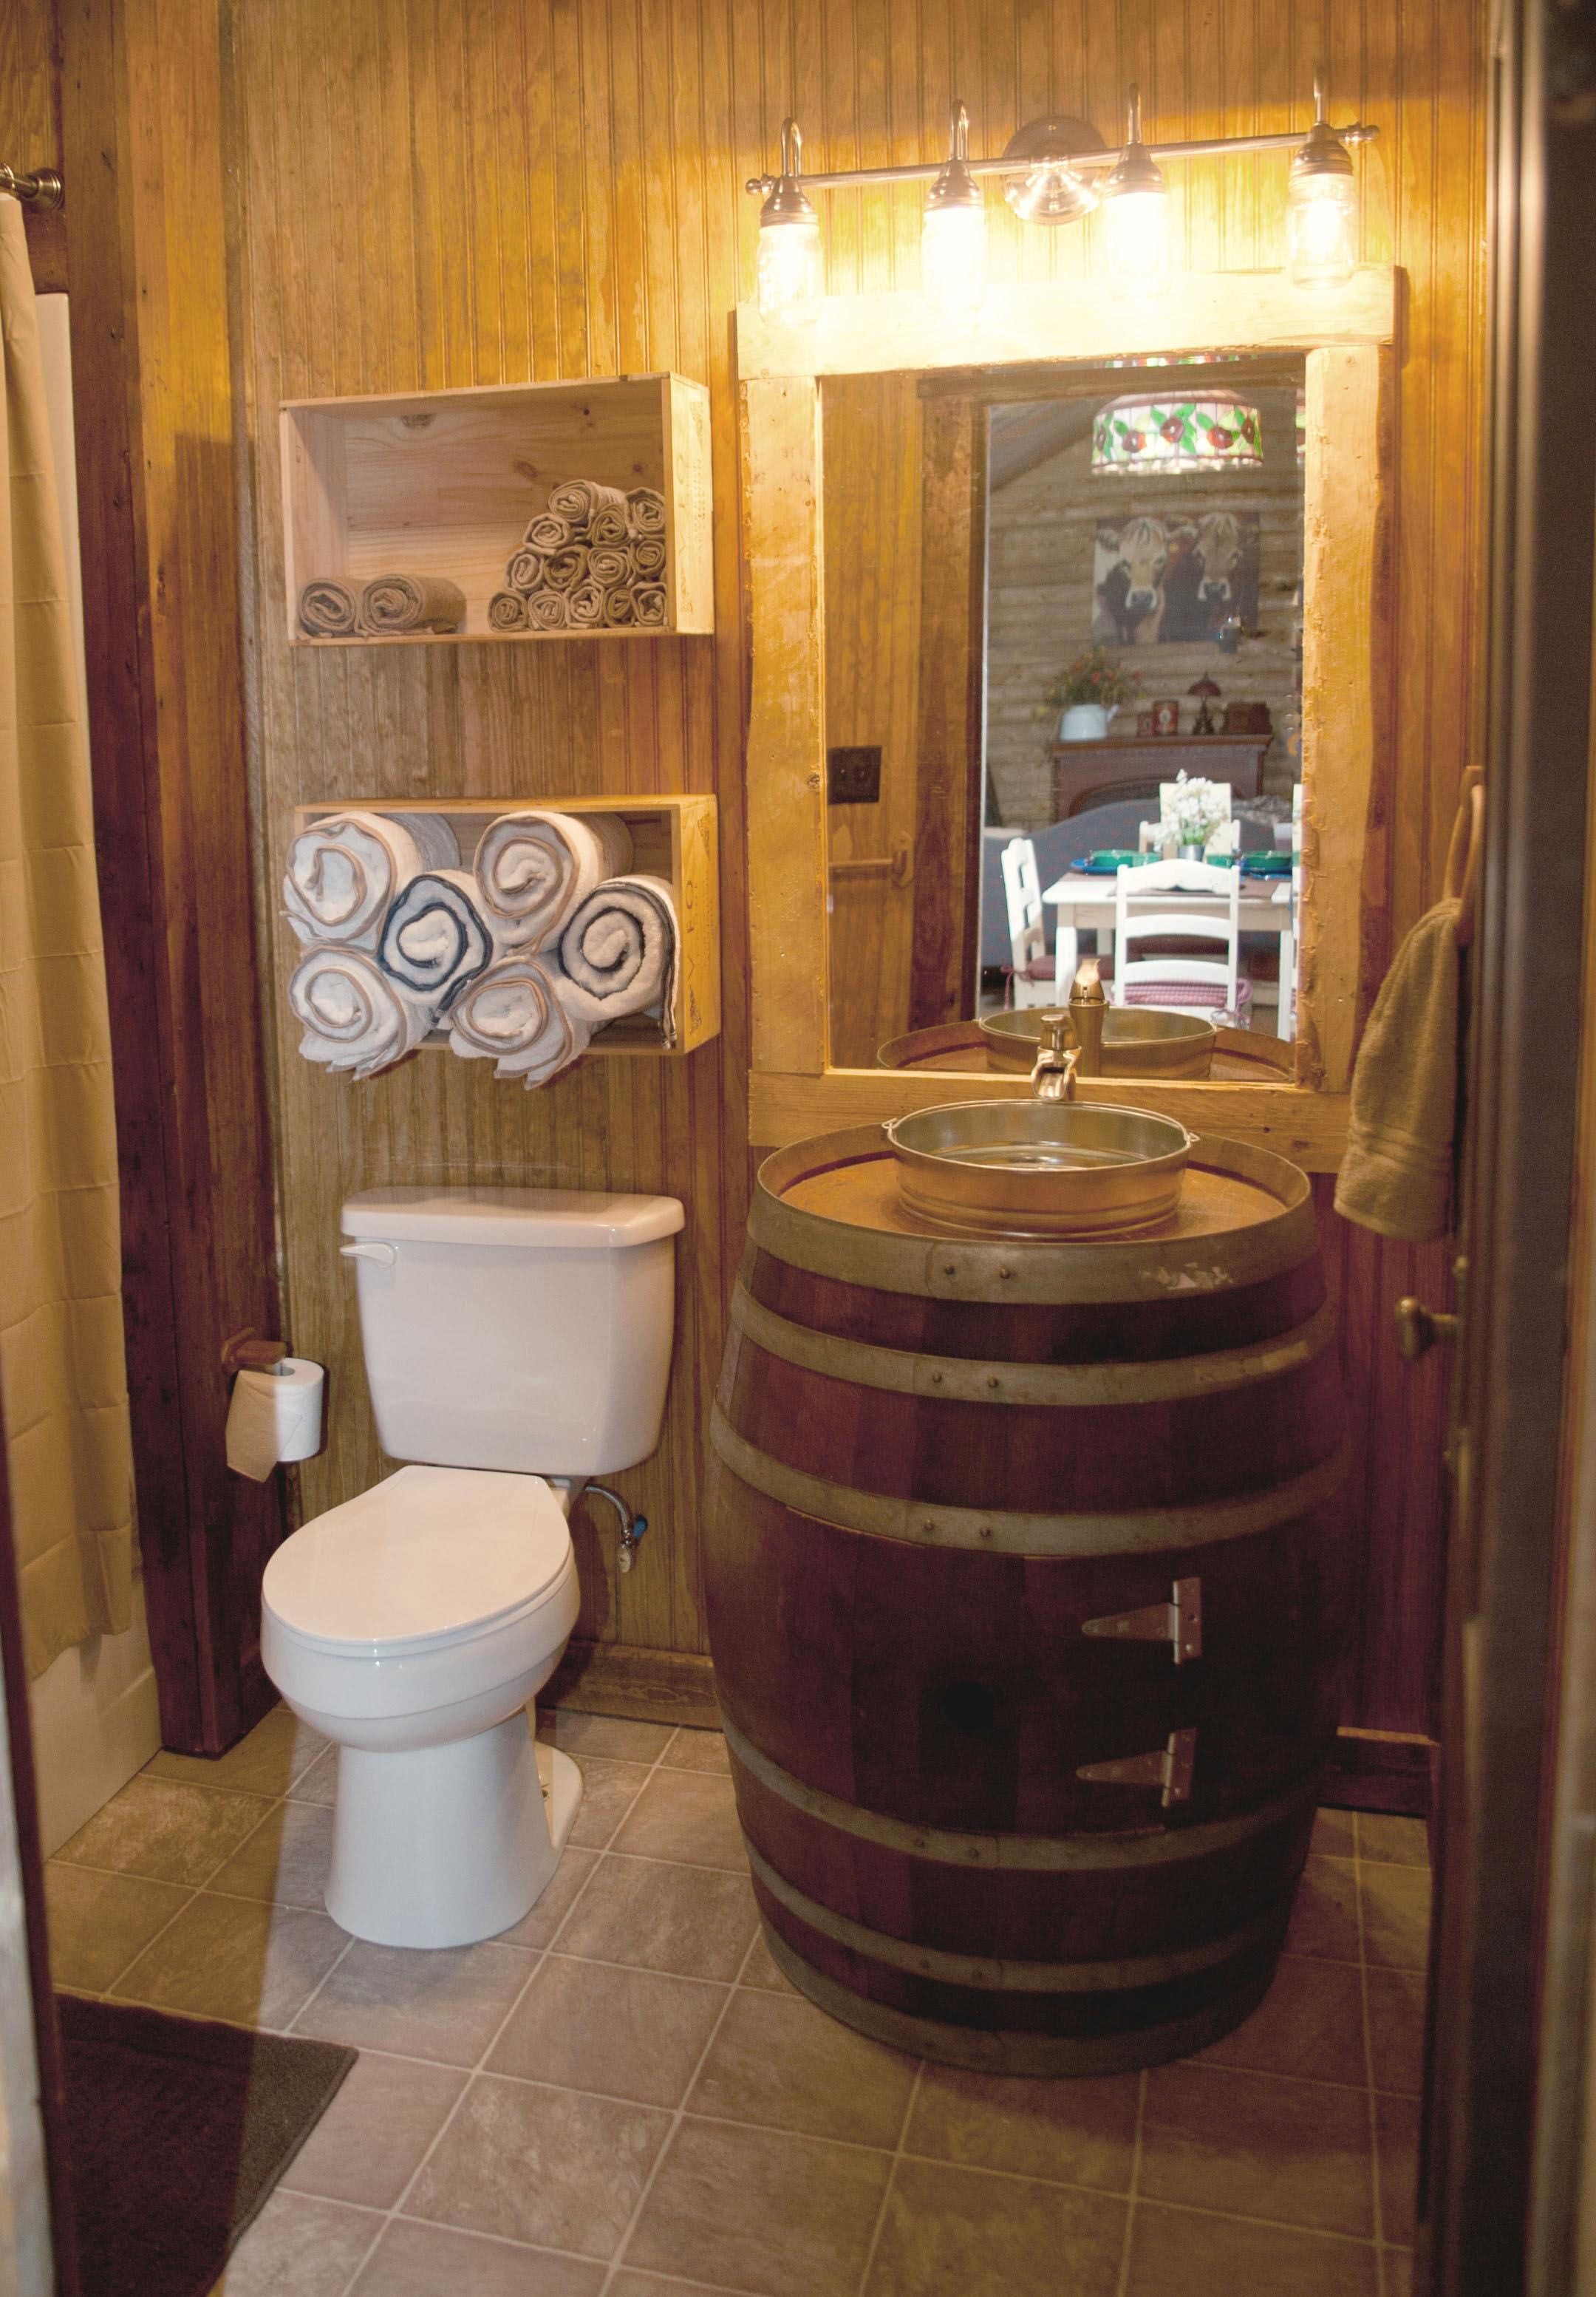 Crate for the towels, barrel and tin bucket for the sink. Top it off